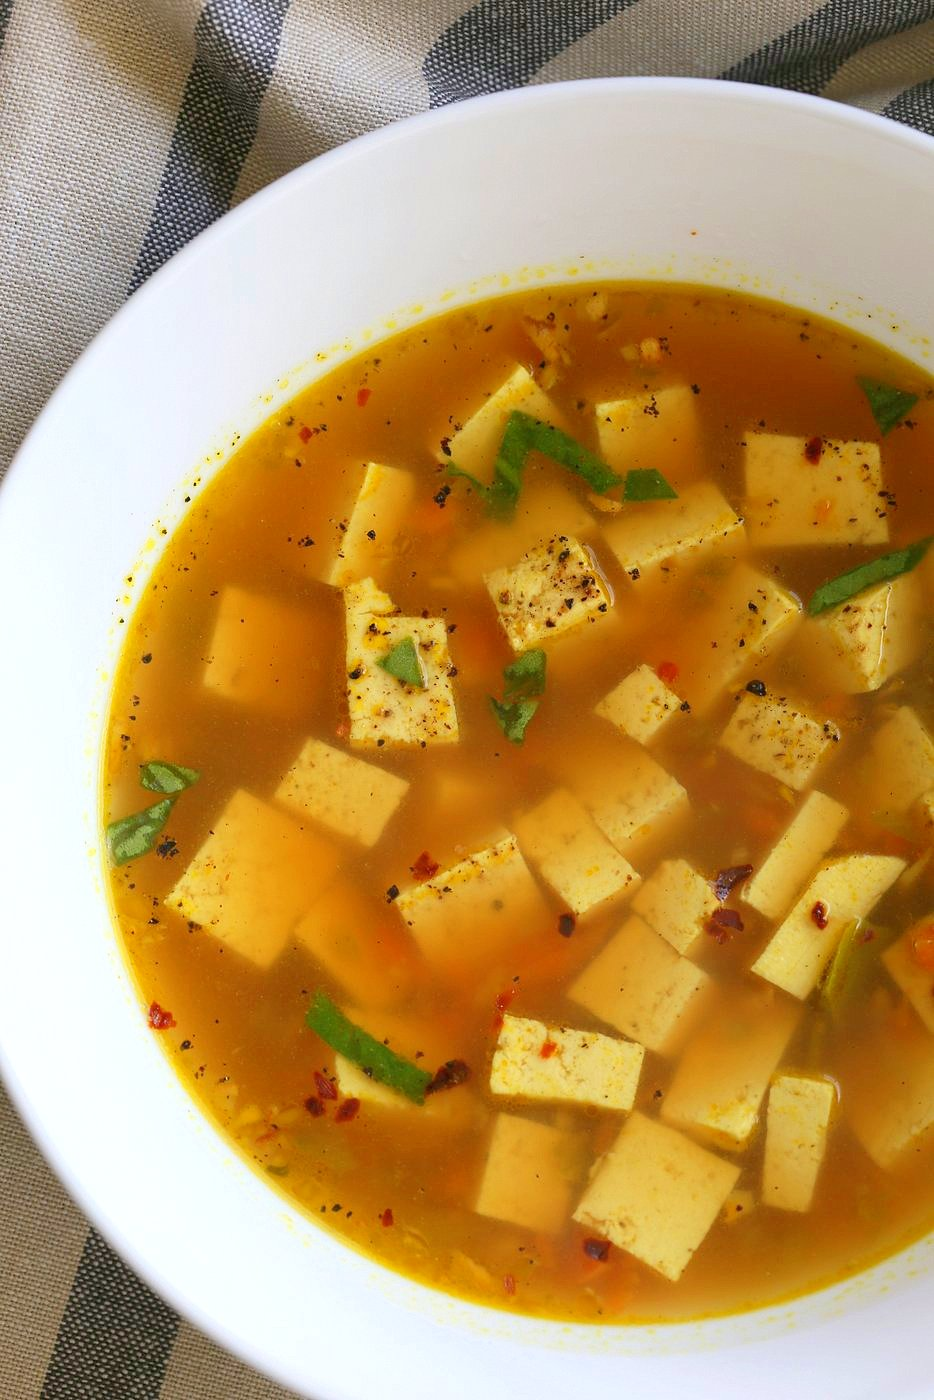 Turmeric Miso Soup With Ginger, Garlic and Tofu. Kick that cold with this soothing, anti inflammatory, brothy soup. Vegan Gluten-free Nut-free #vegan #Recipe #veganricha | VeganRicha.com